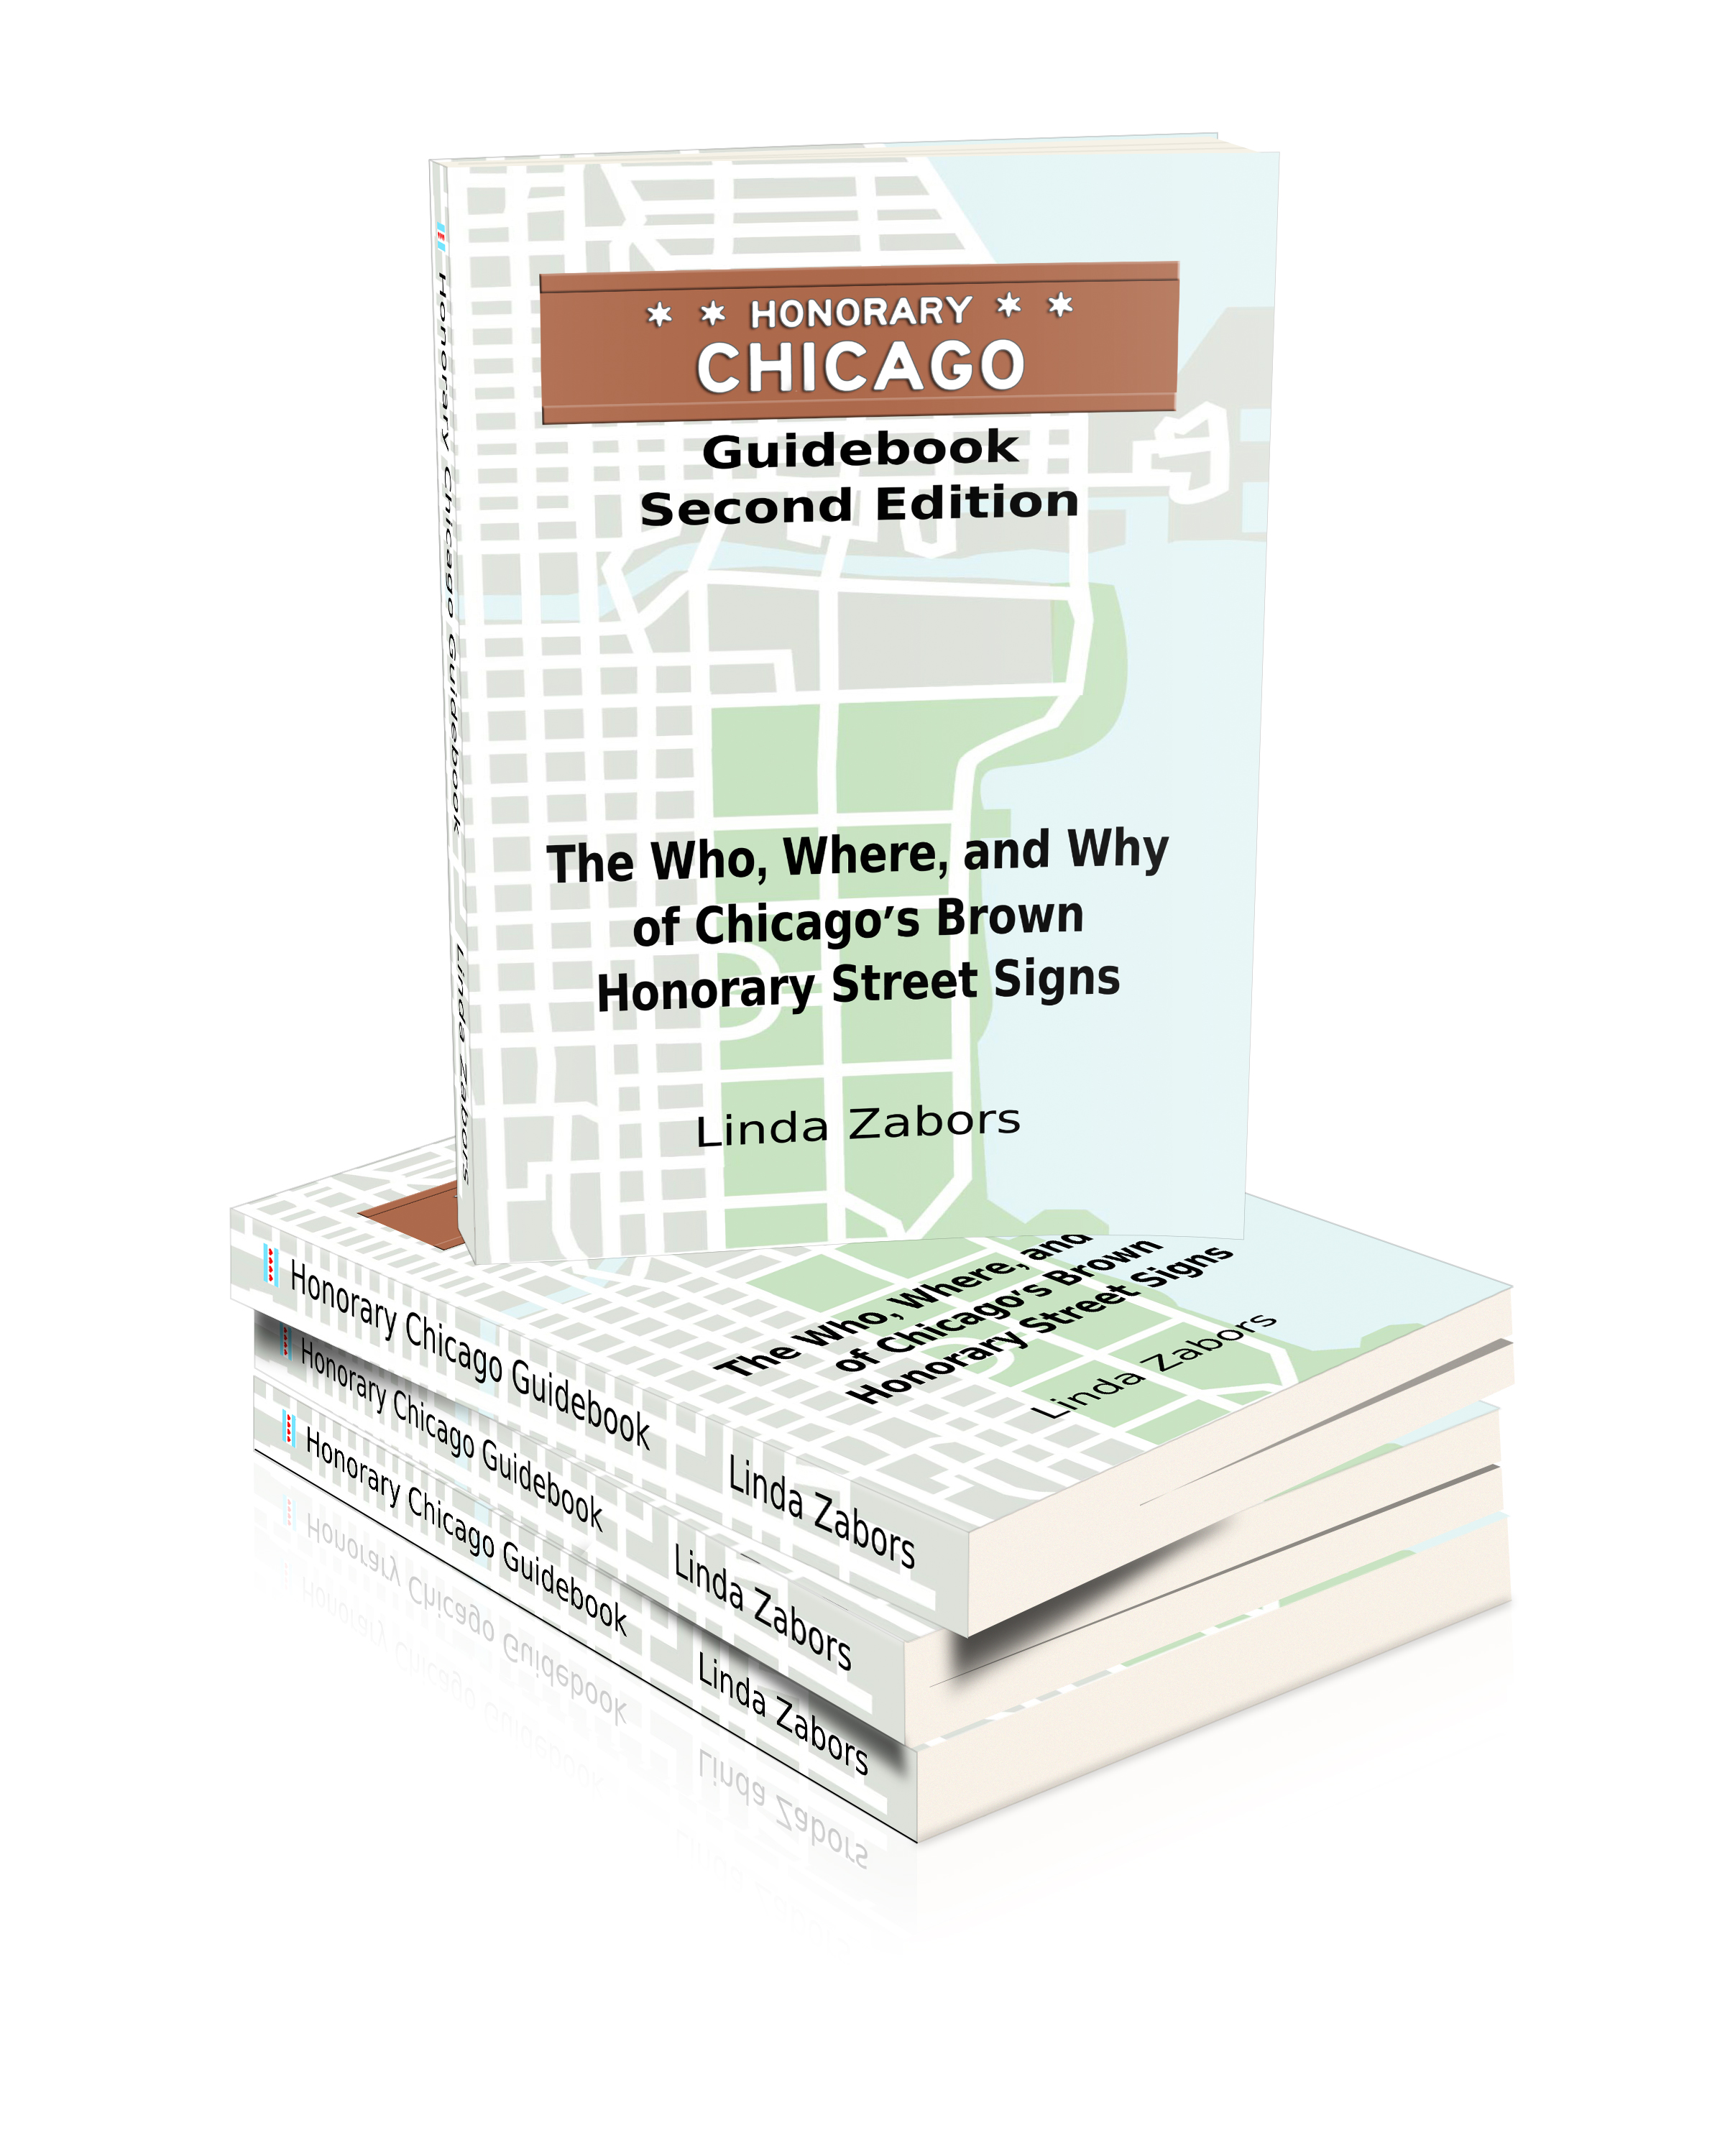 Honorary Chicago Guidebook, 2nd edition brown signs